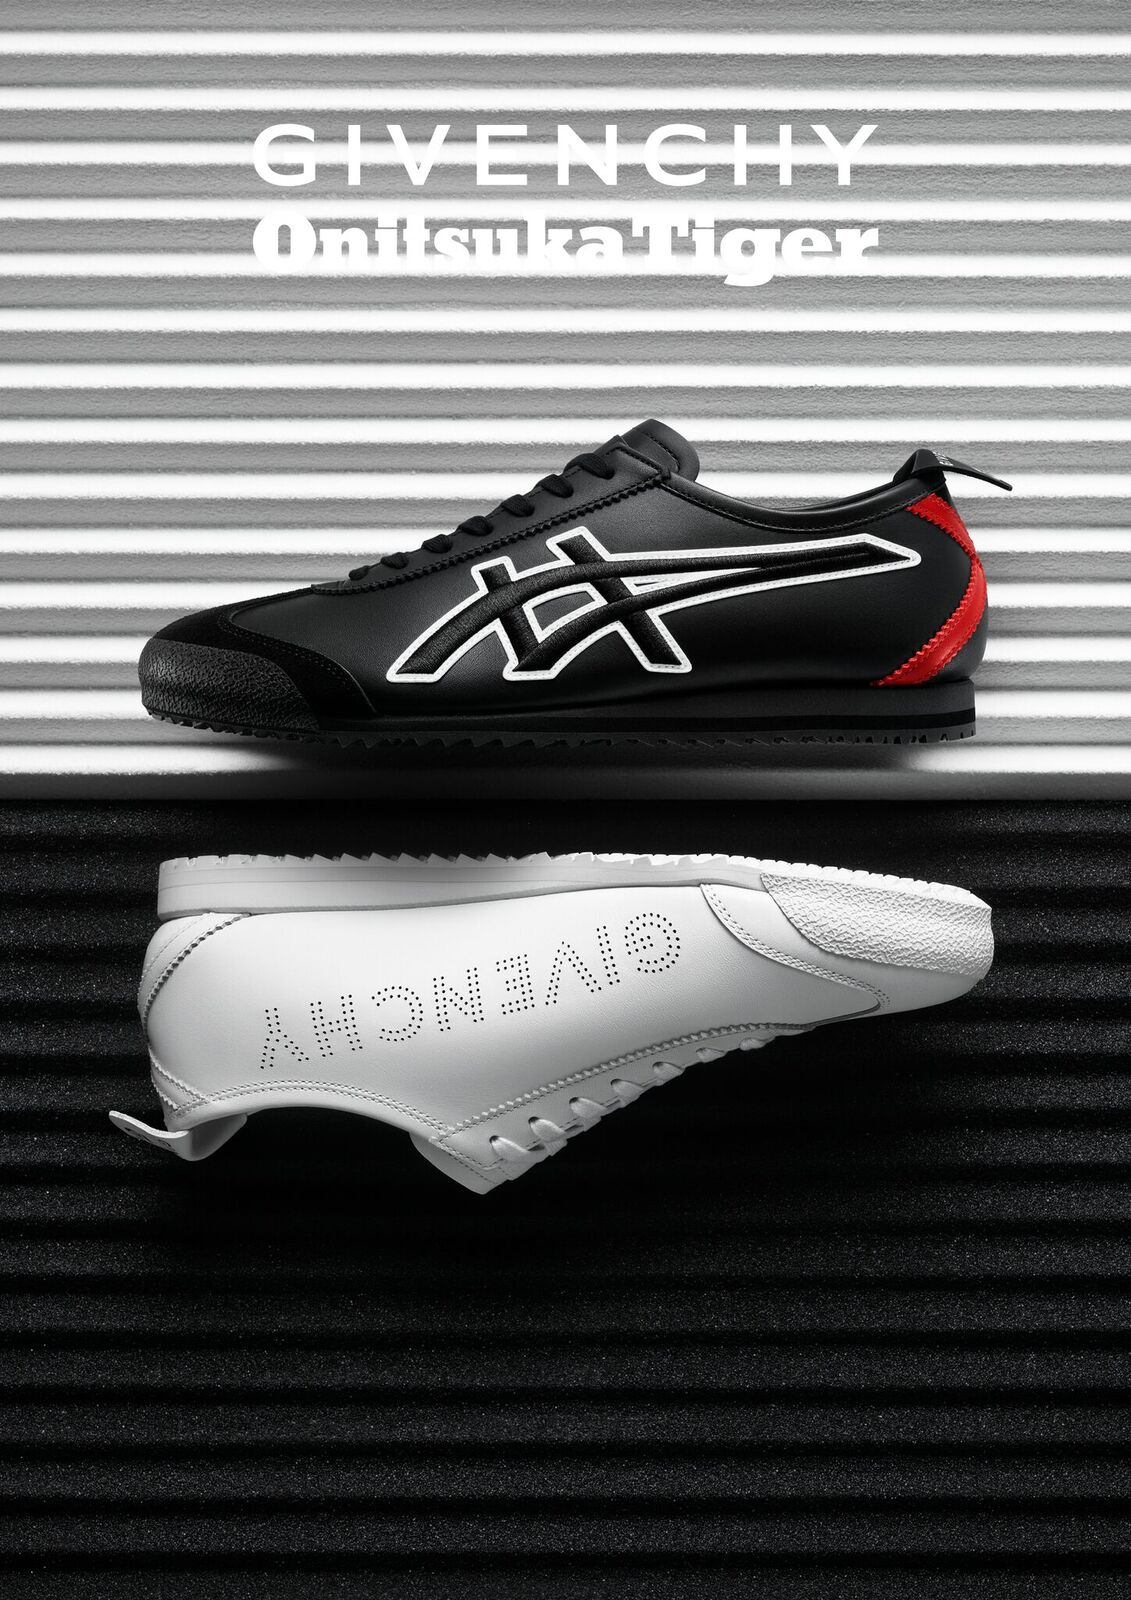 hot sale online df4bc 45880 Givenchy And Onitsuka Tiger Just Dropped Their Surprise ...